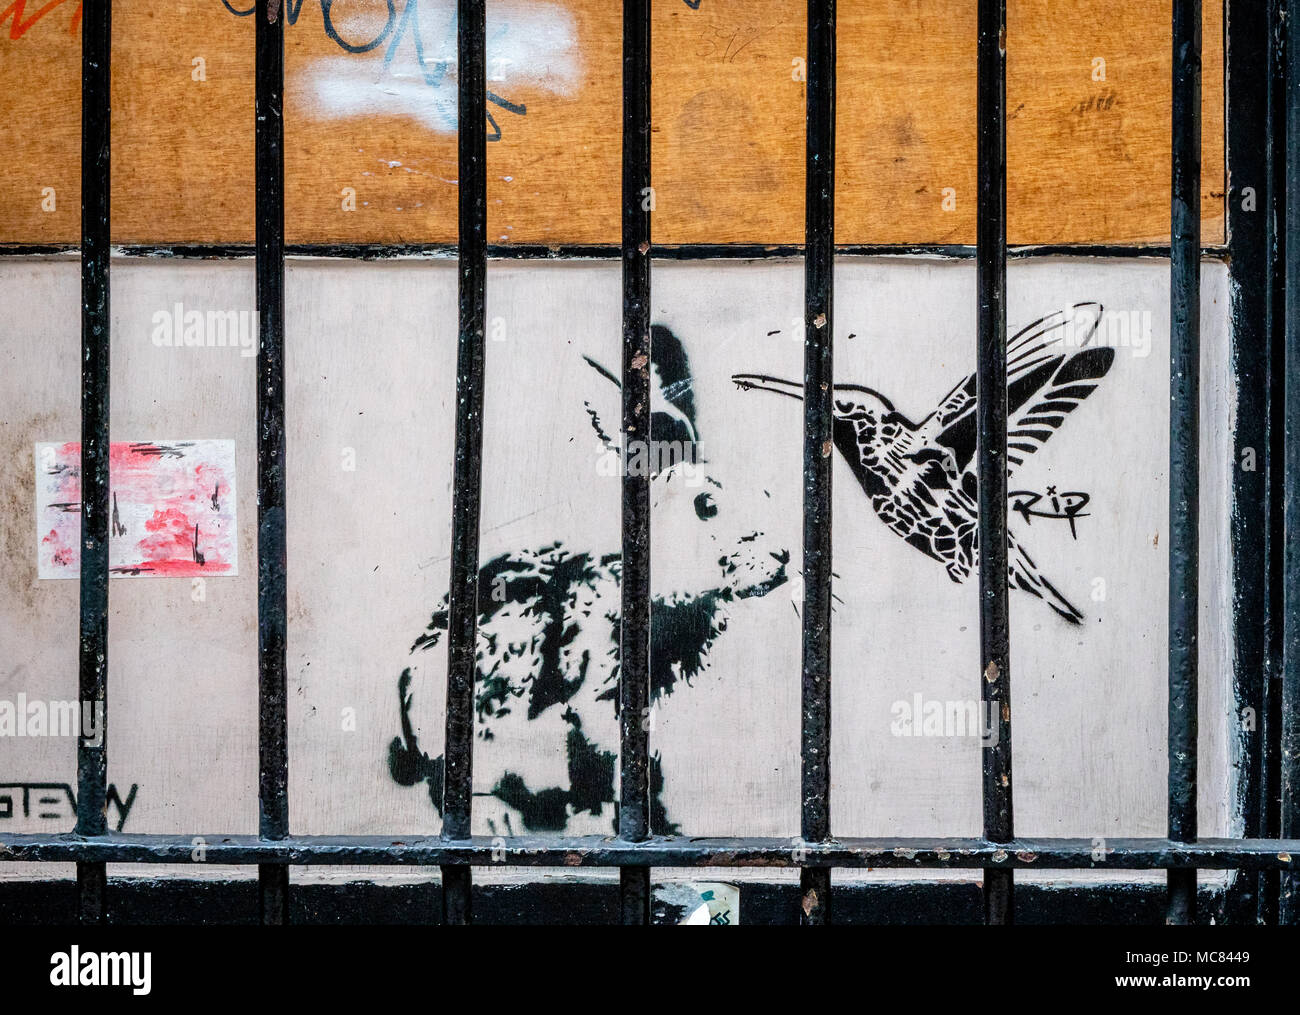 Street art featuring a rabbit and humming bird behind bars in a narrow alley in the centre of Bristol UK Stock Photo